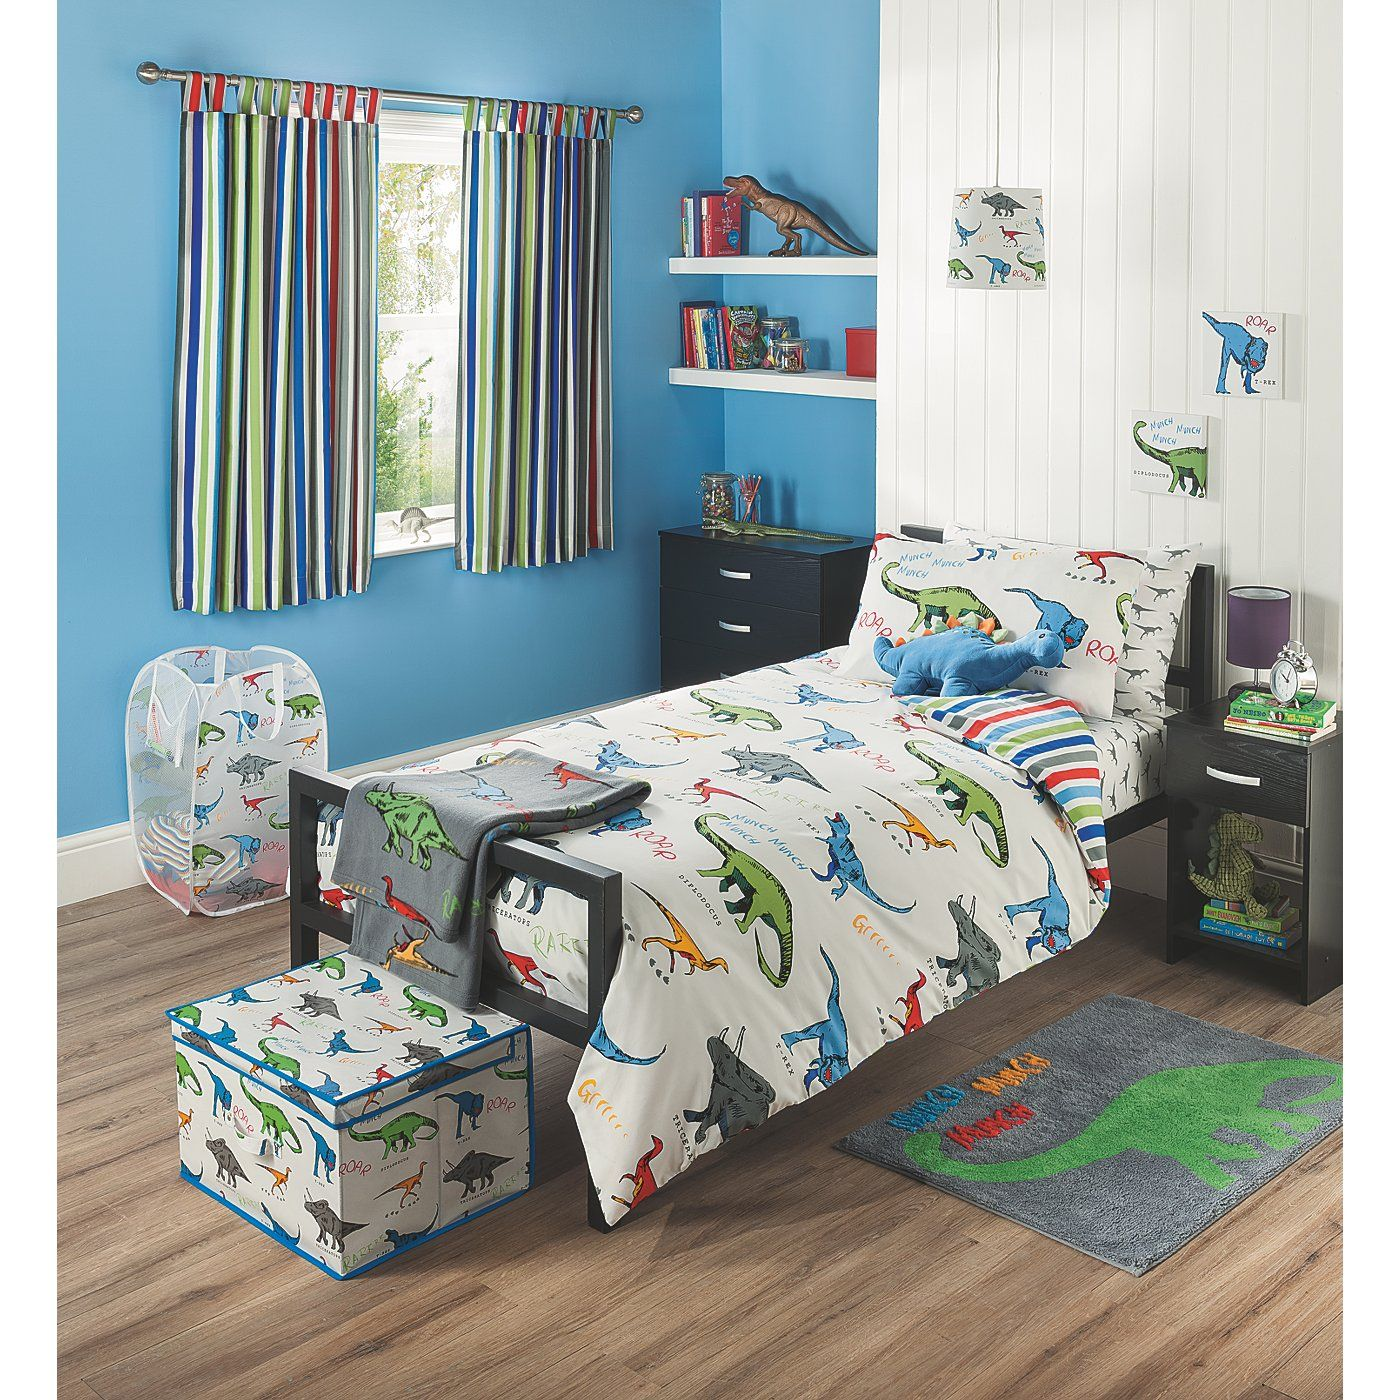 Buy George Home Dinosaurs Bedroom Range From Our Bedding